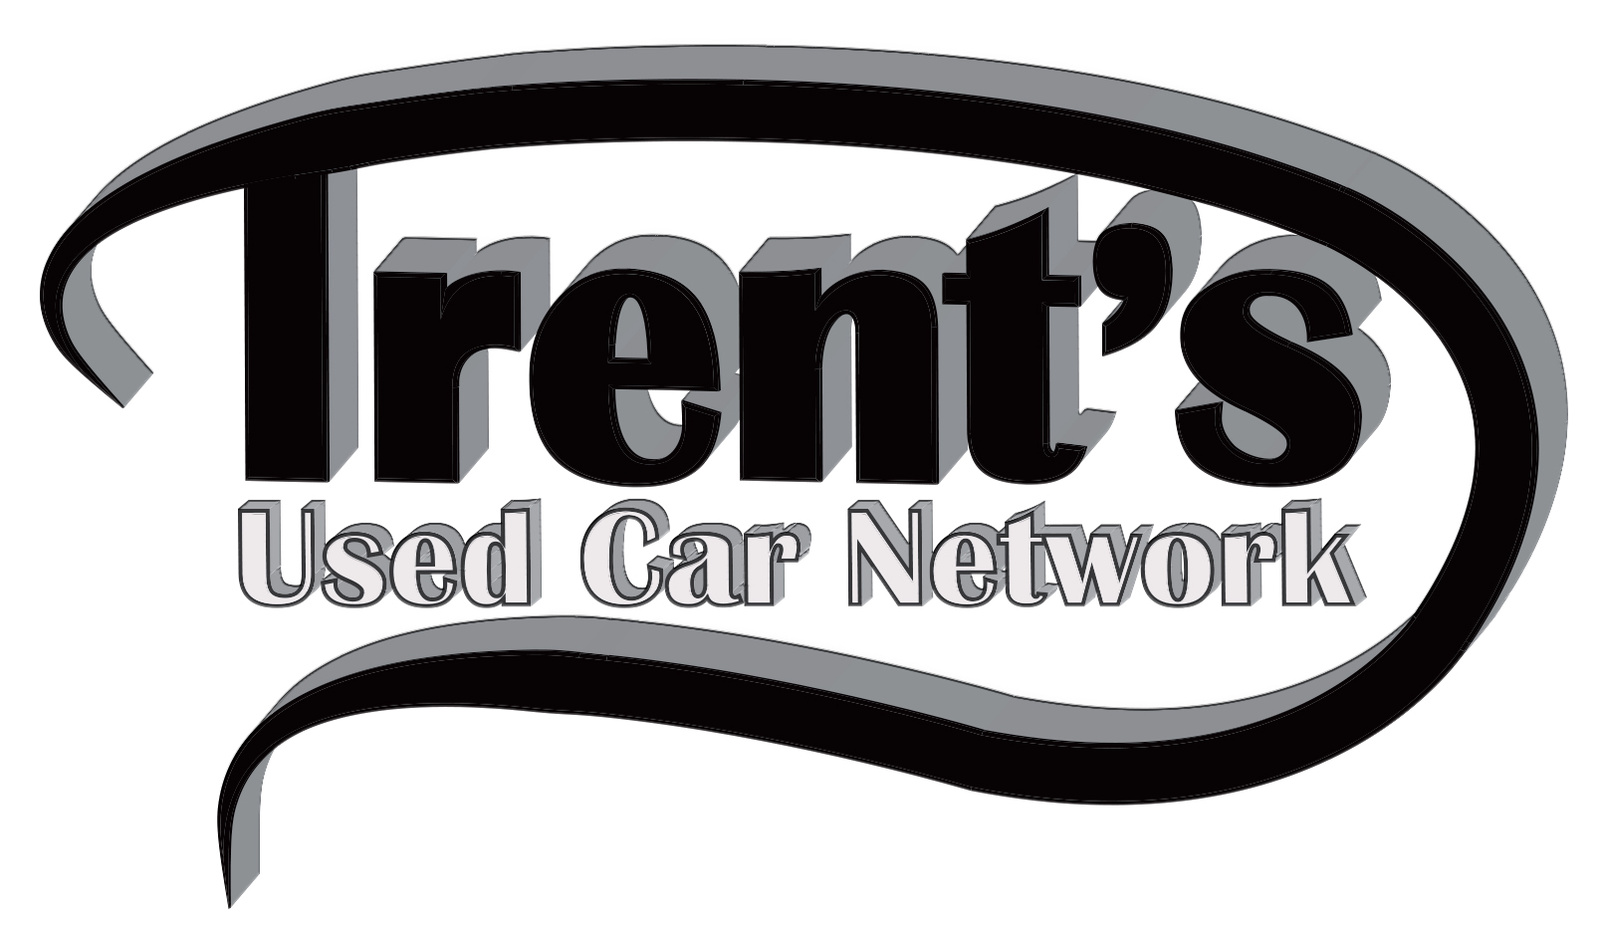 Trents Used Car Network